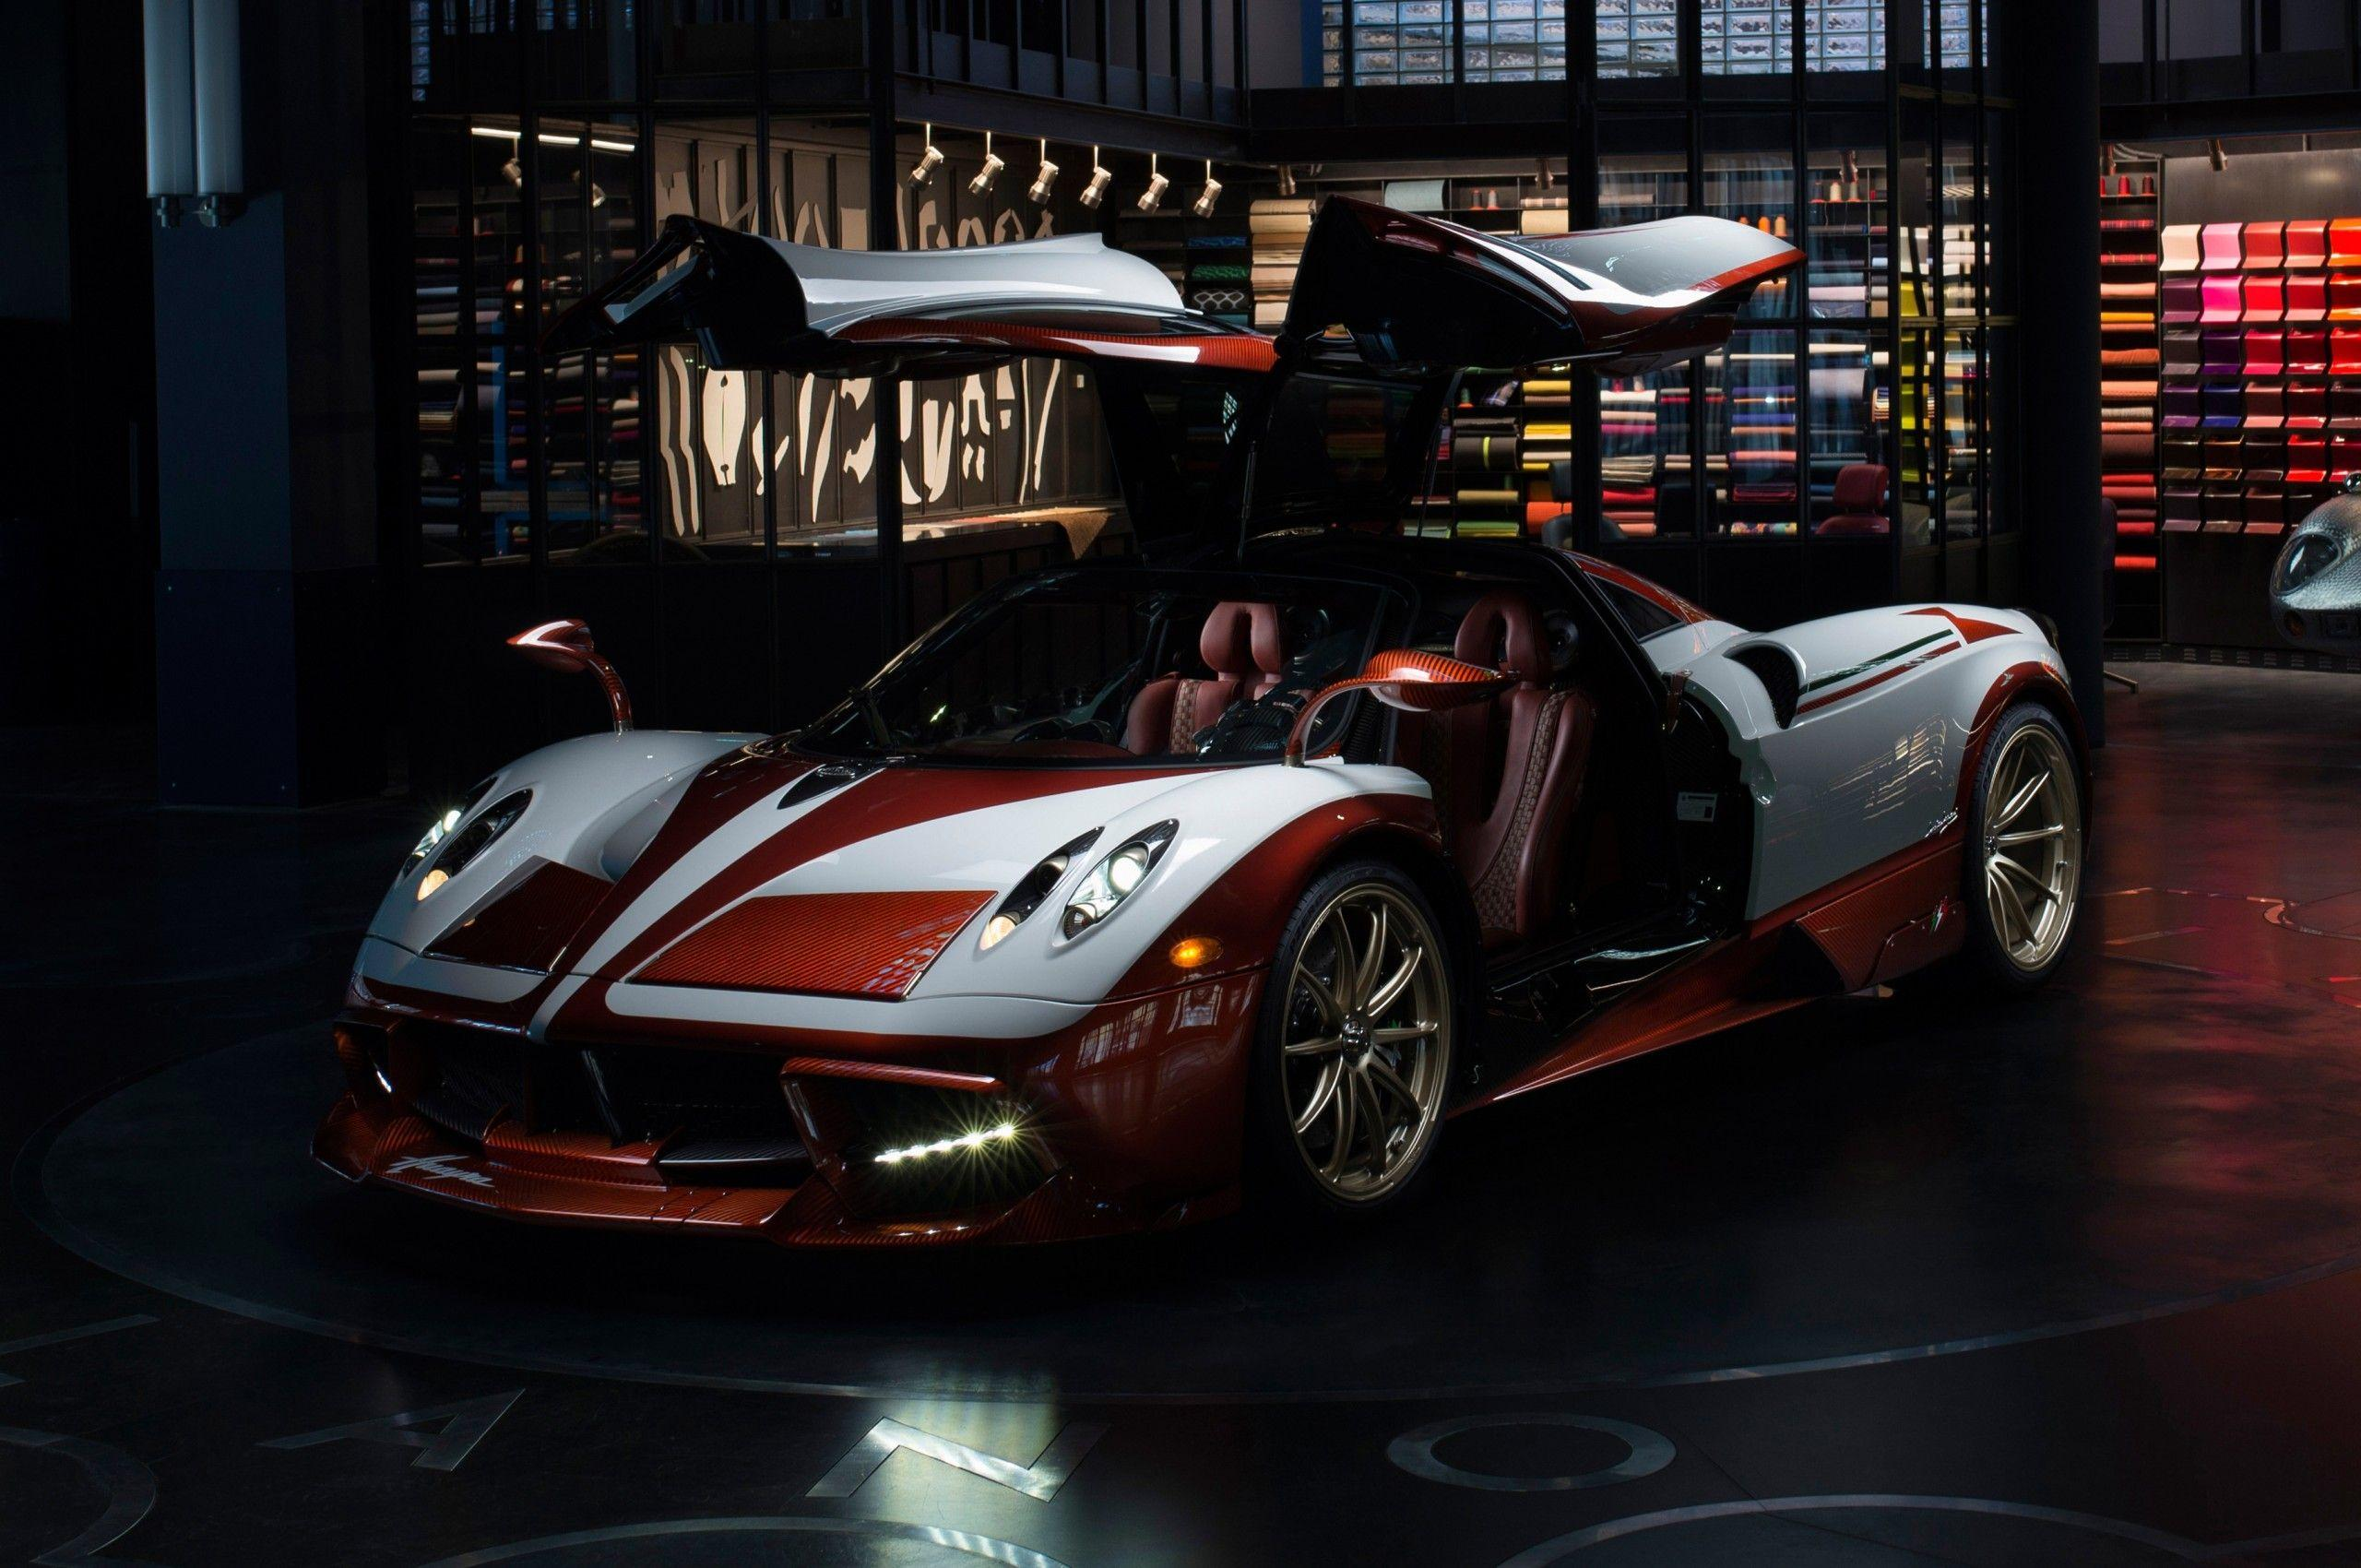 Download 2560x1700 Pagani Huayra 2018, Supercar, Cars Wallpapers for